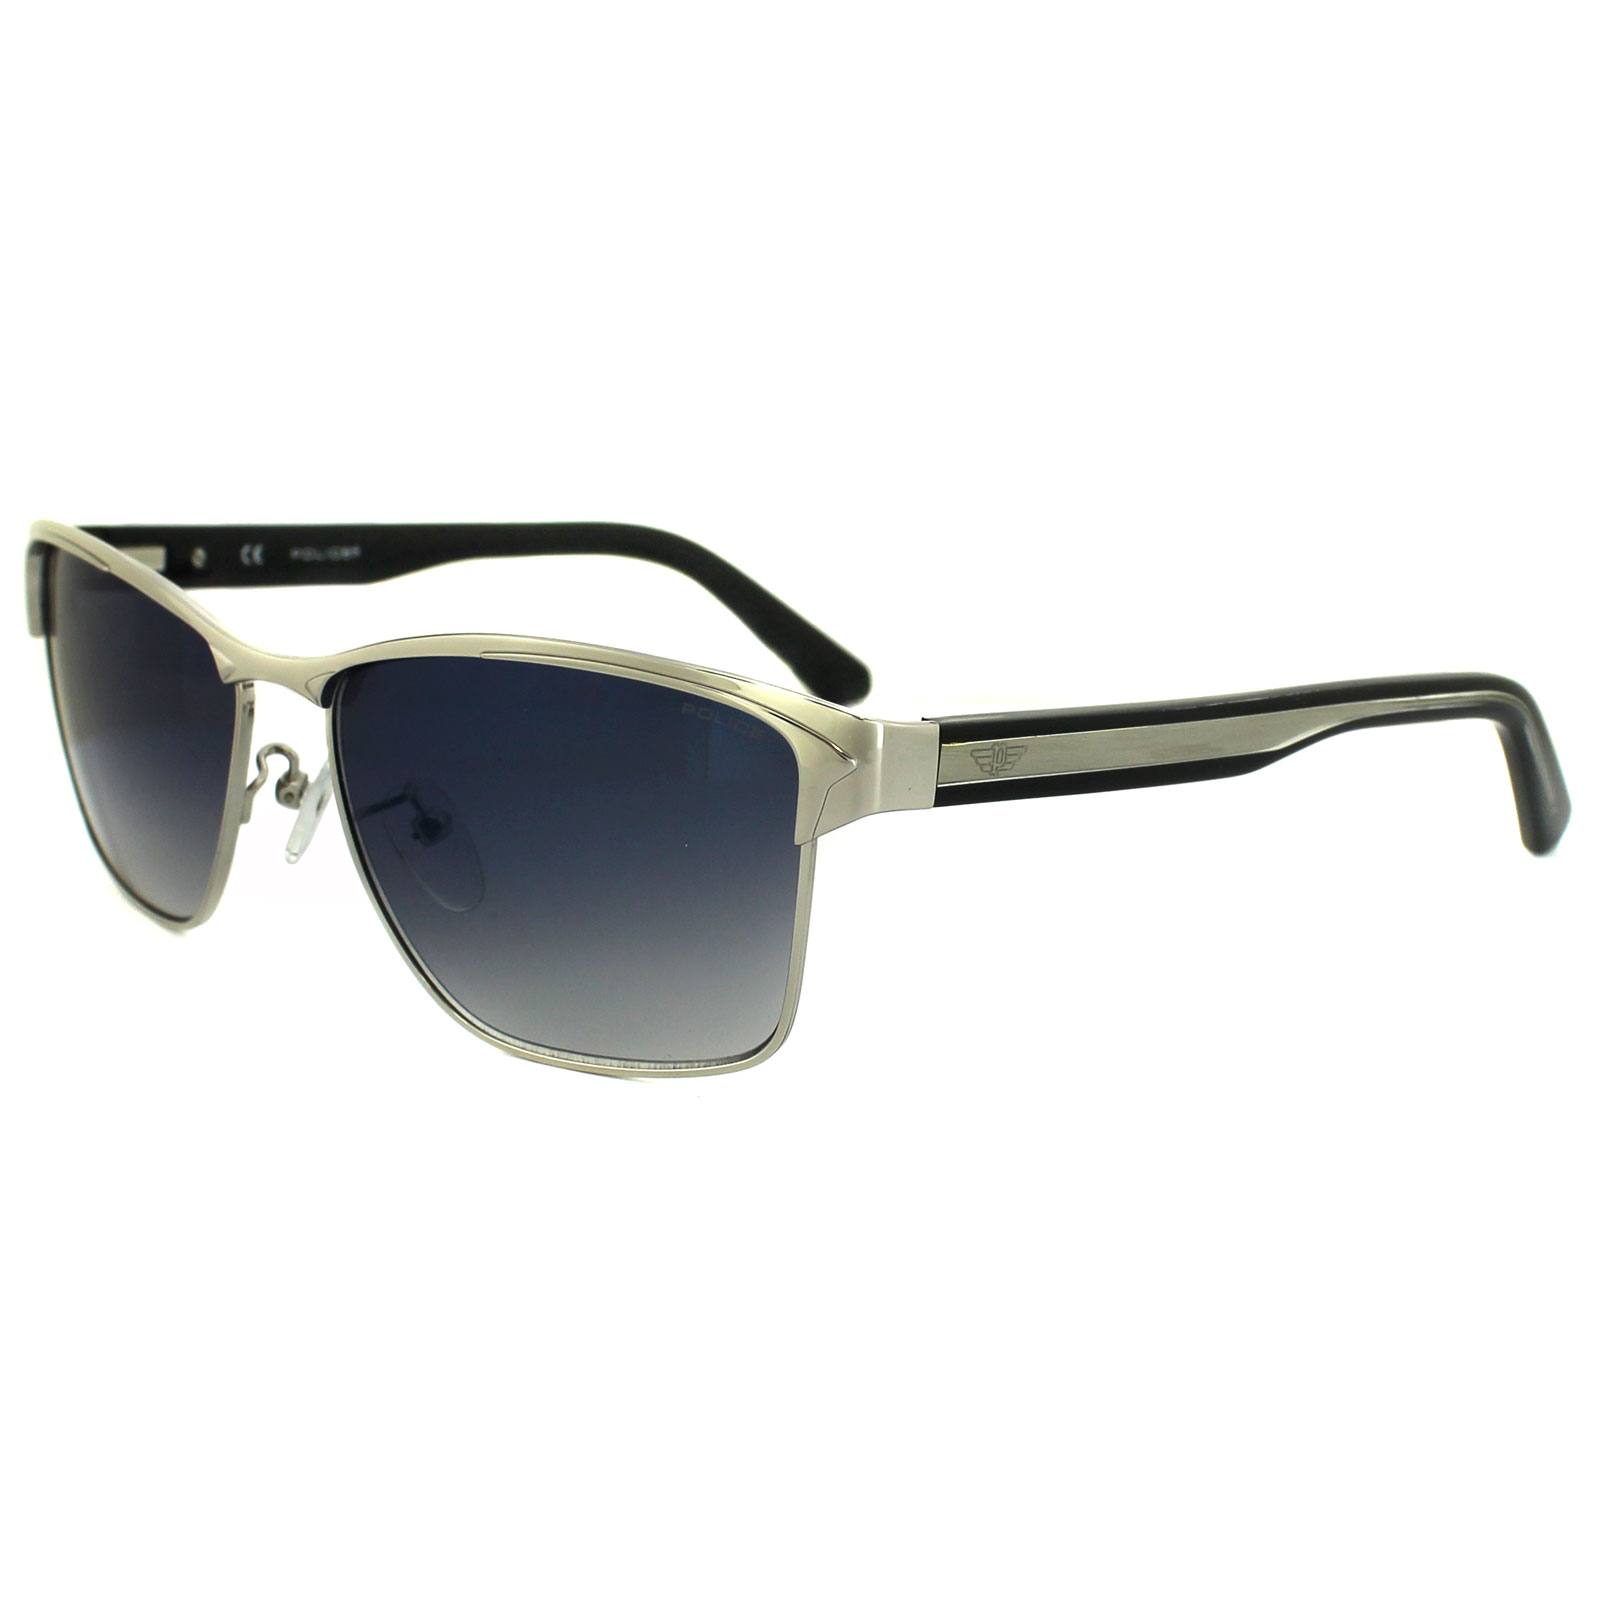 5ee0149c4c Cheap Police Sunglasses 8851 Glider 2 - Discounted Sunglasses